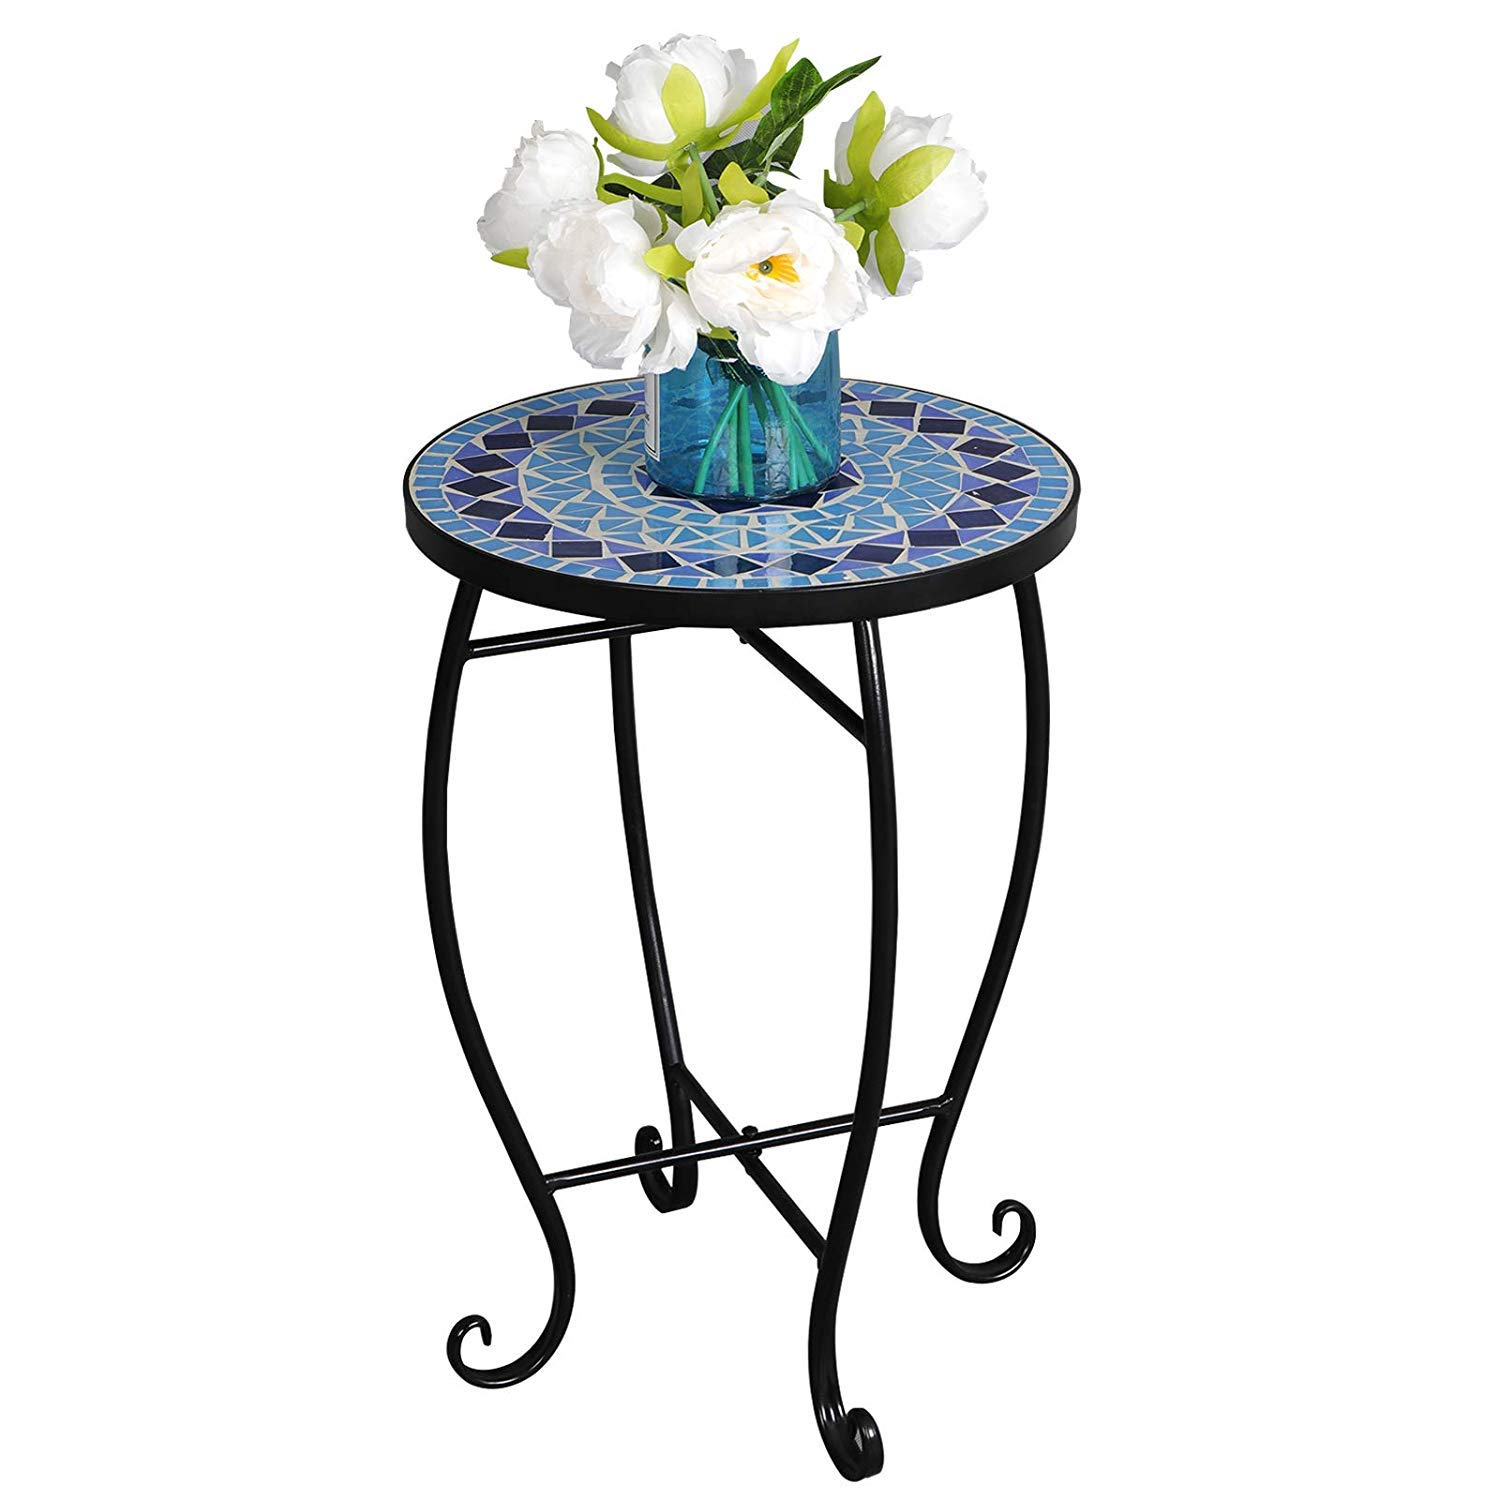 homgarden mosaic round side table plant stand floor metal garden accent flower pots rack planter holder porch balcony patio tablejust decor ashley furniture dining room sets